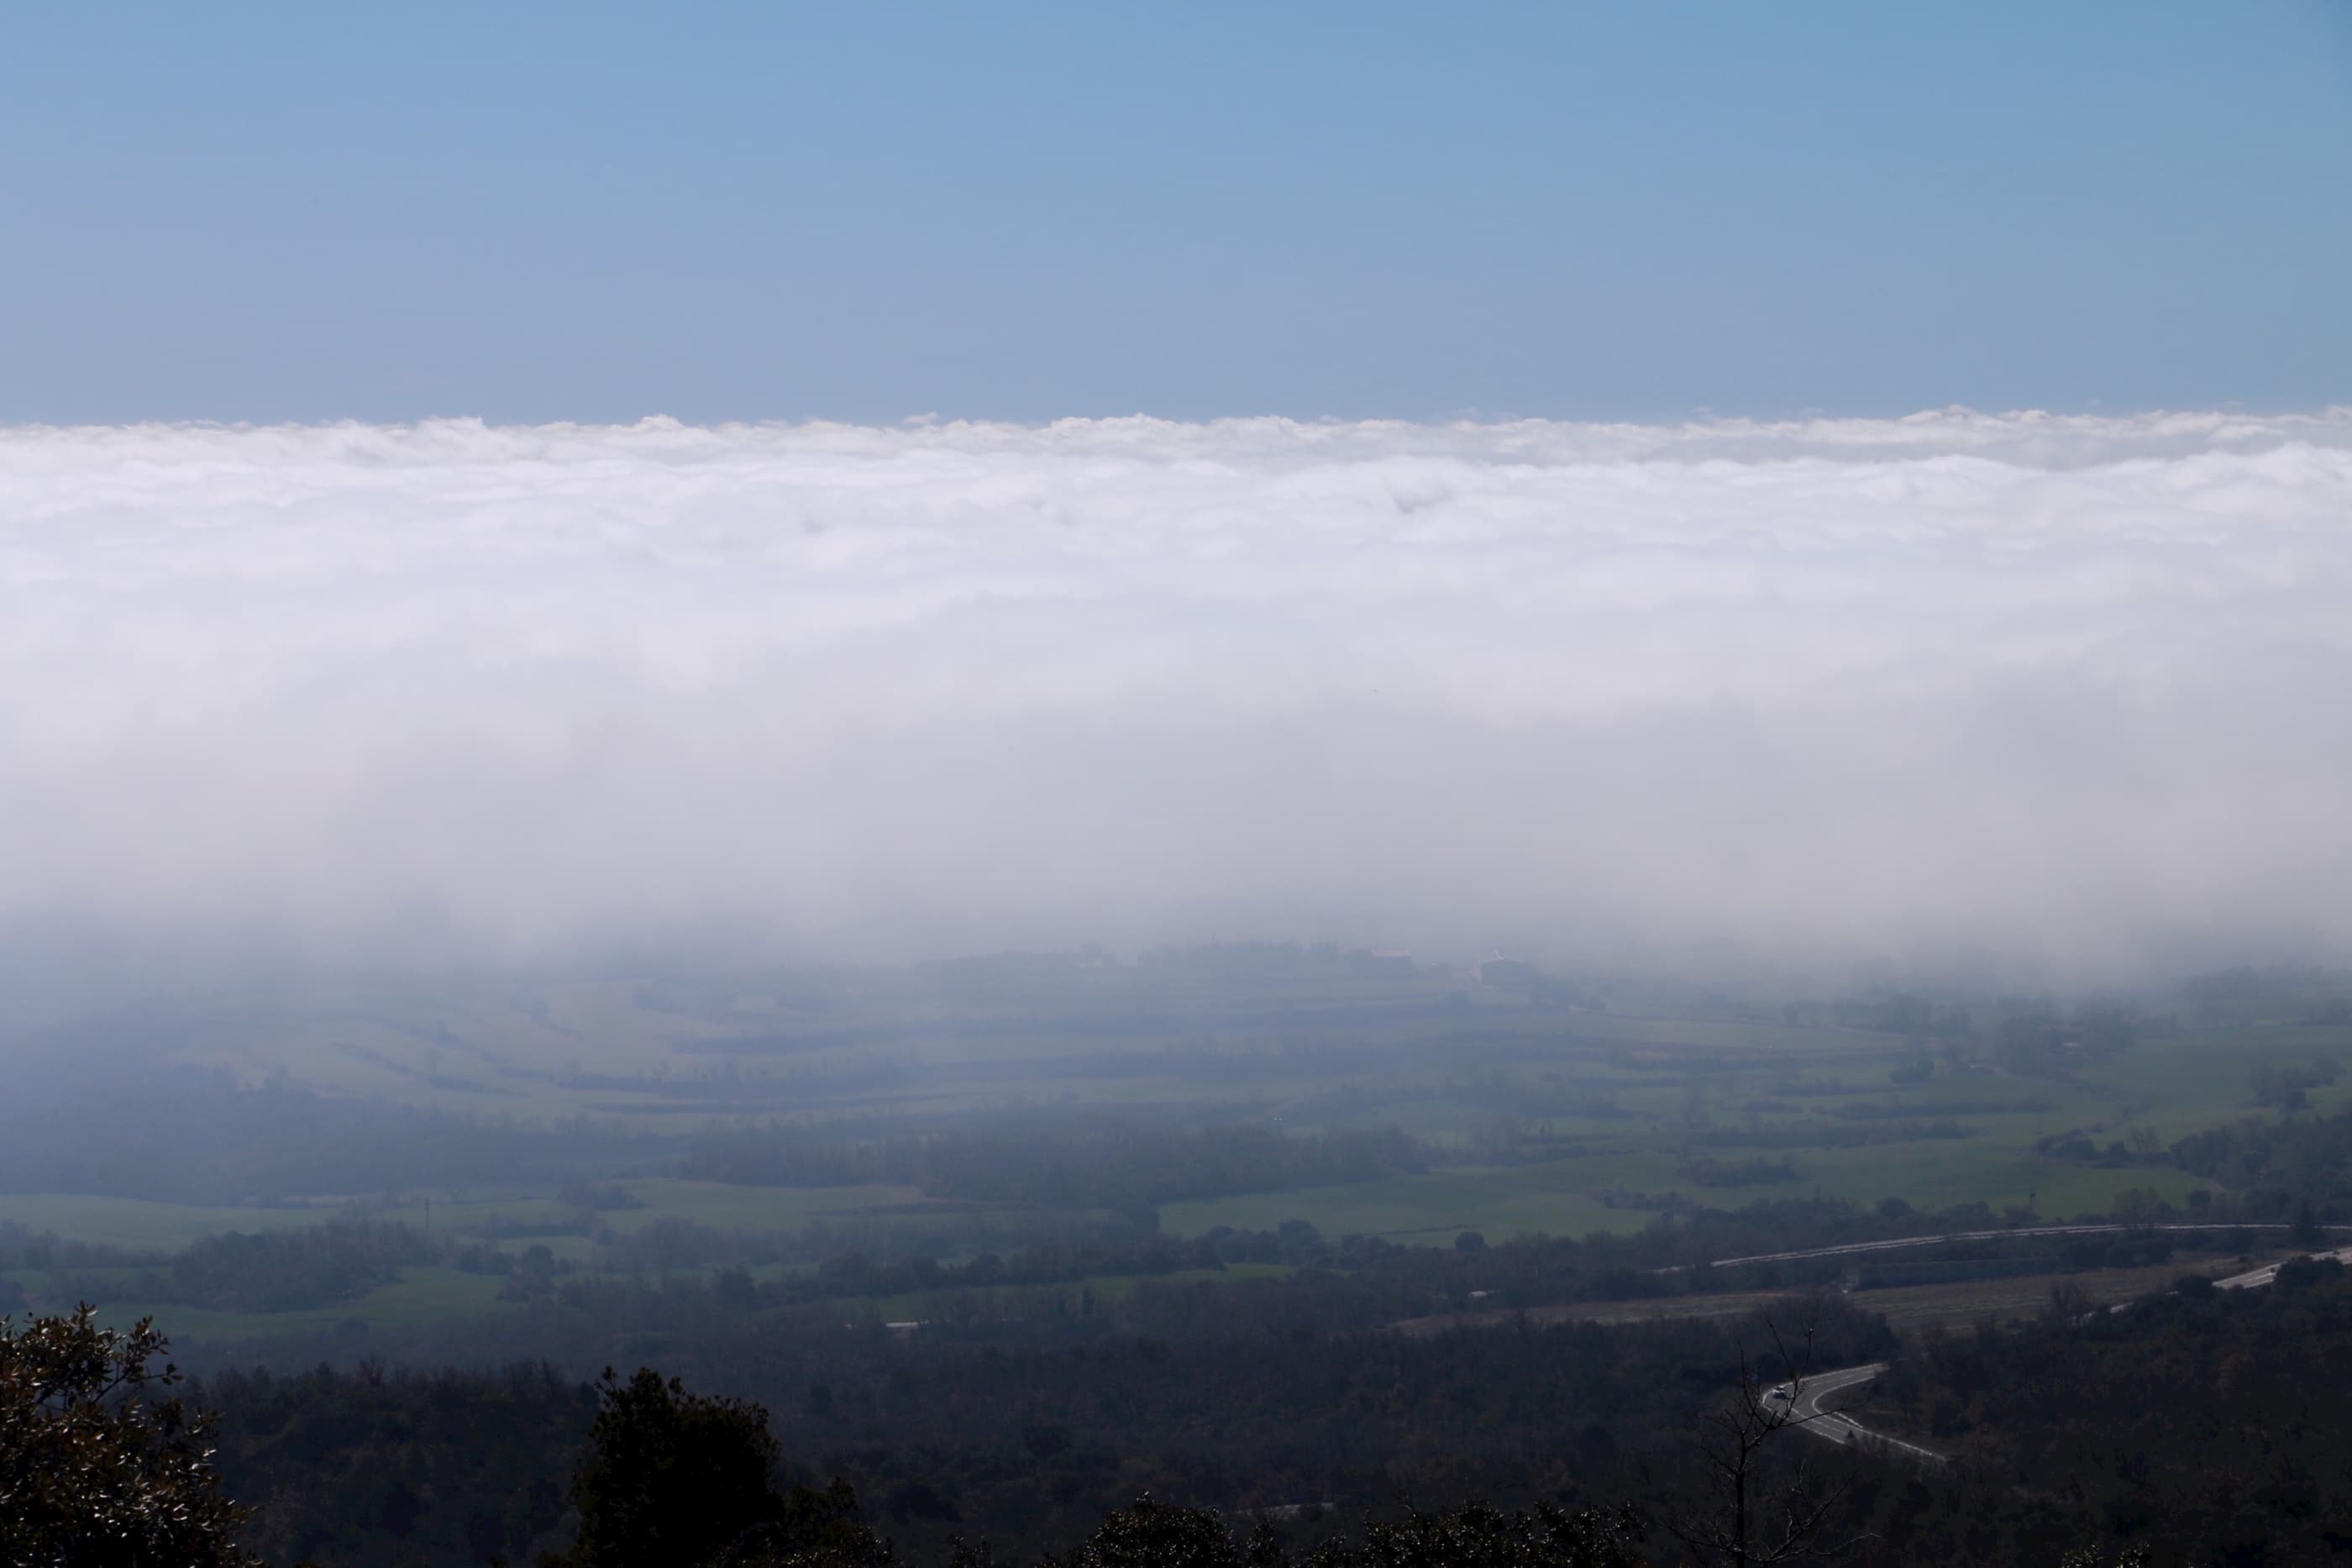 Fog in the La Noguera county, viewed from Montsec mountains.